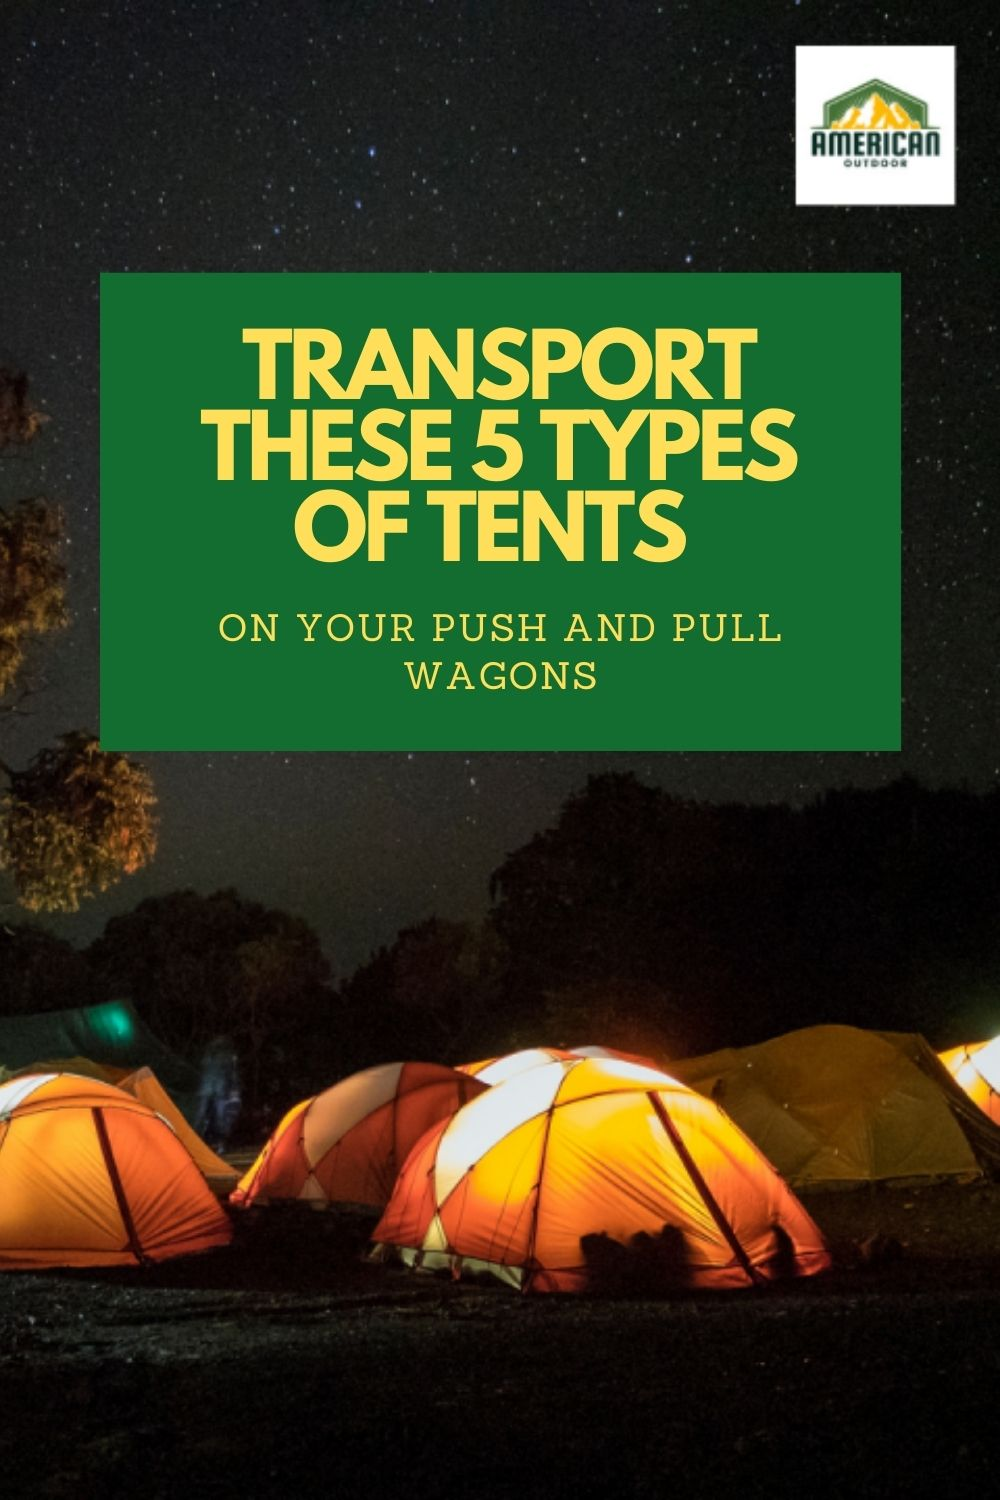 5-Types-of-Tents-and-Each-of-Their-Benefits-To-Transport-on-Push-and-Pull-Wagons-on-Your-Next-Camping-Trip